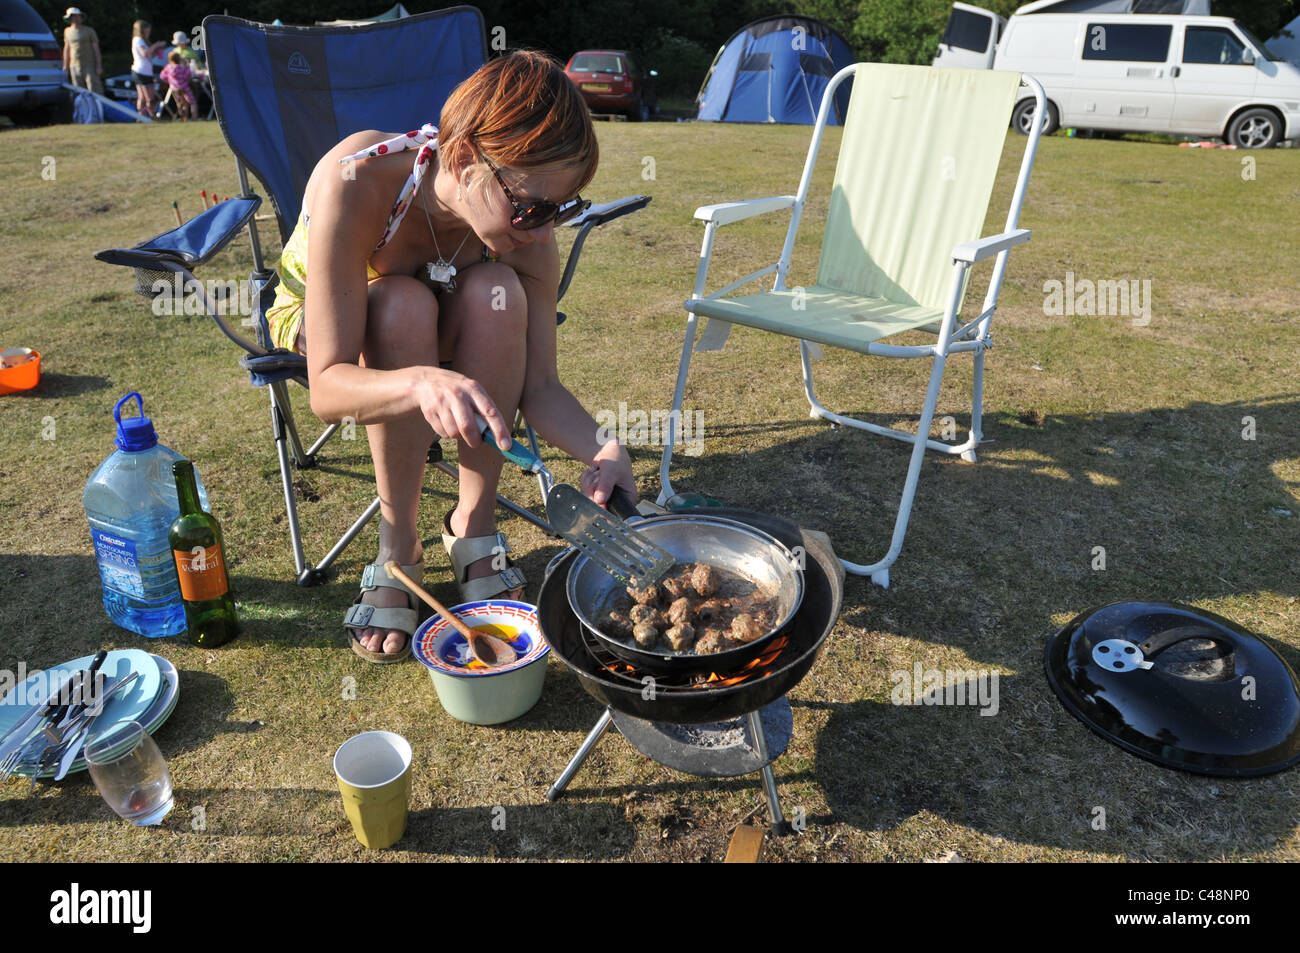 A 45 year old woman cooking on a campsite - Stock Image